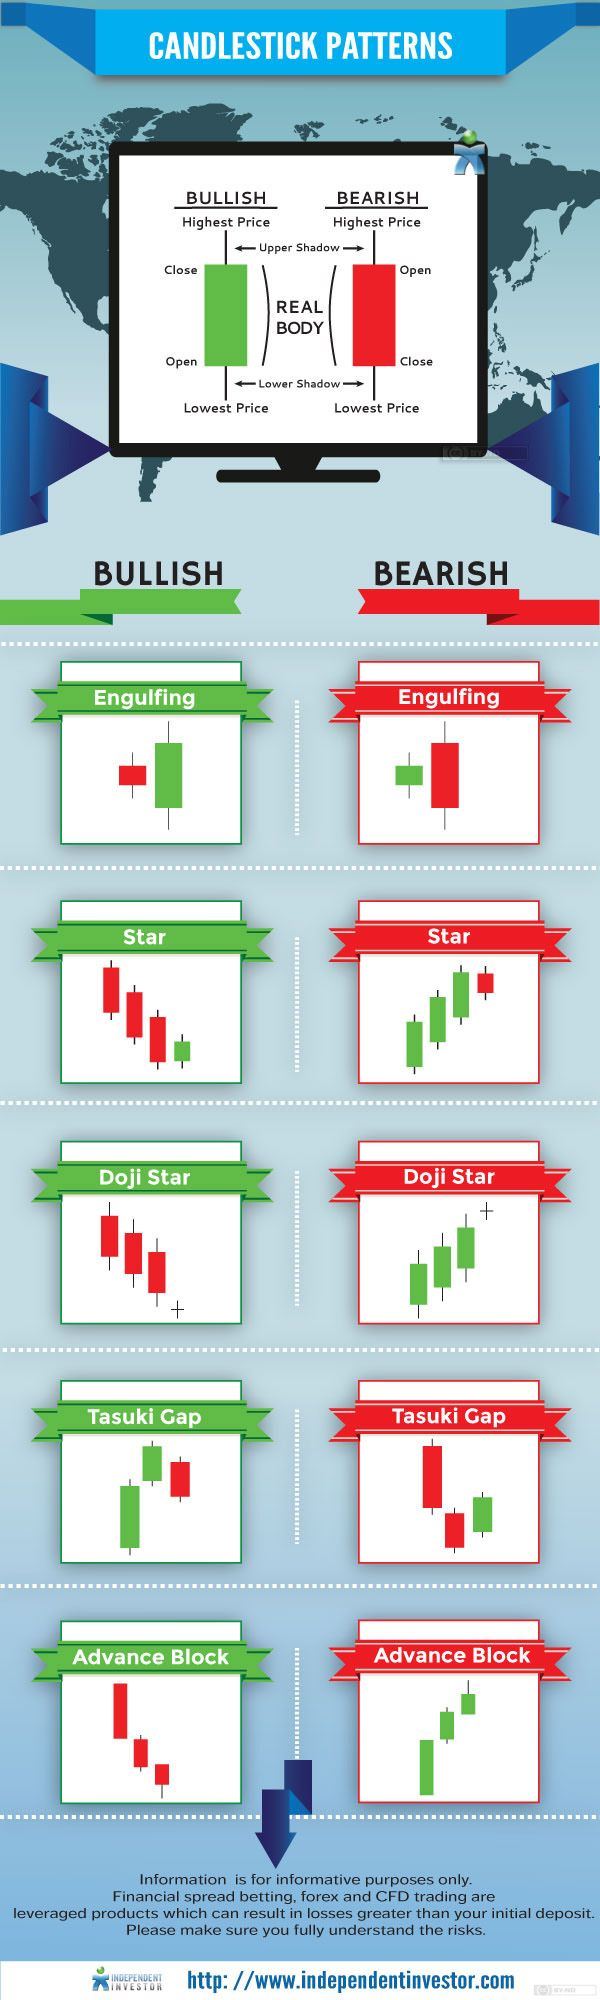 #candlestick_patterns #day_trading #independentinvestor, join our million dollar trading challenge!                                                                                                                                                     More